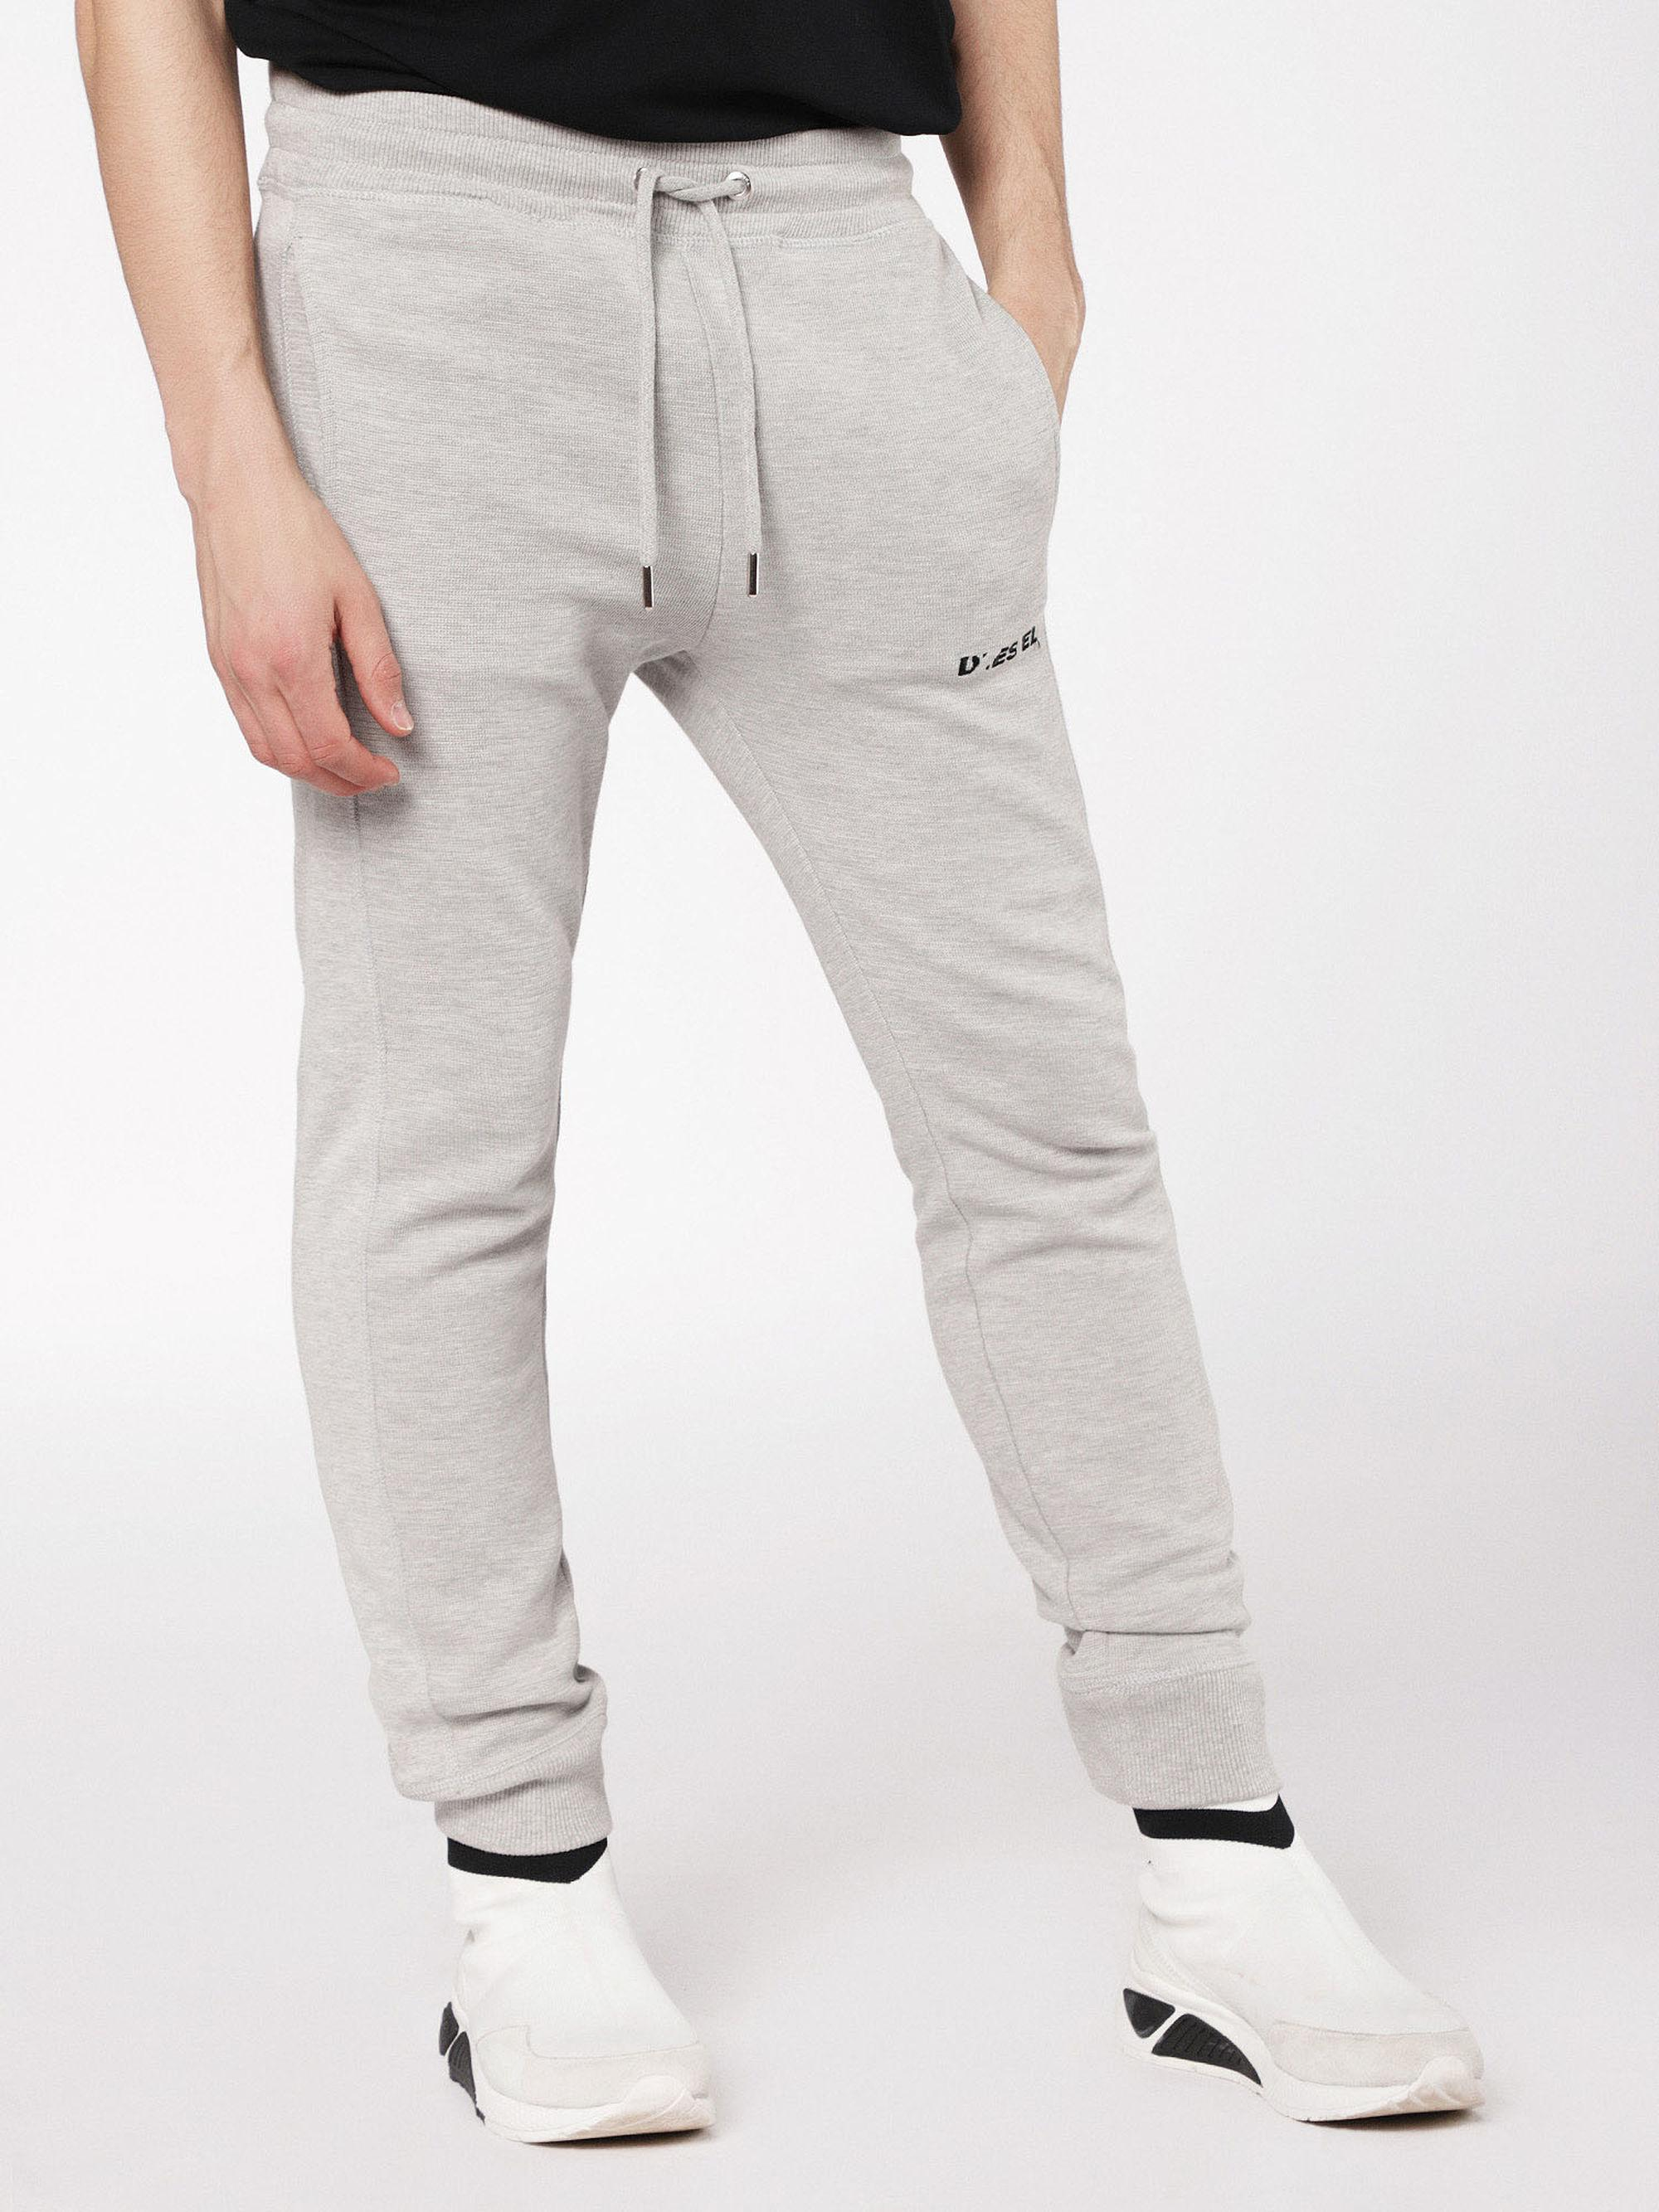 P-Tajo sweatpants - Grey Diesel Perfect Cheap Price Clearance Countdown Package Sale Amazon High Quality Buy Online eMWn0GHf